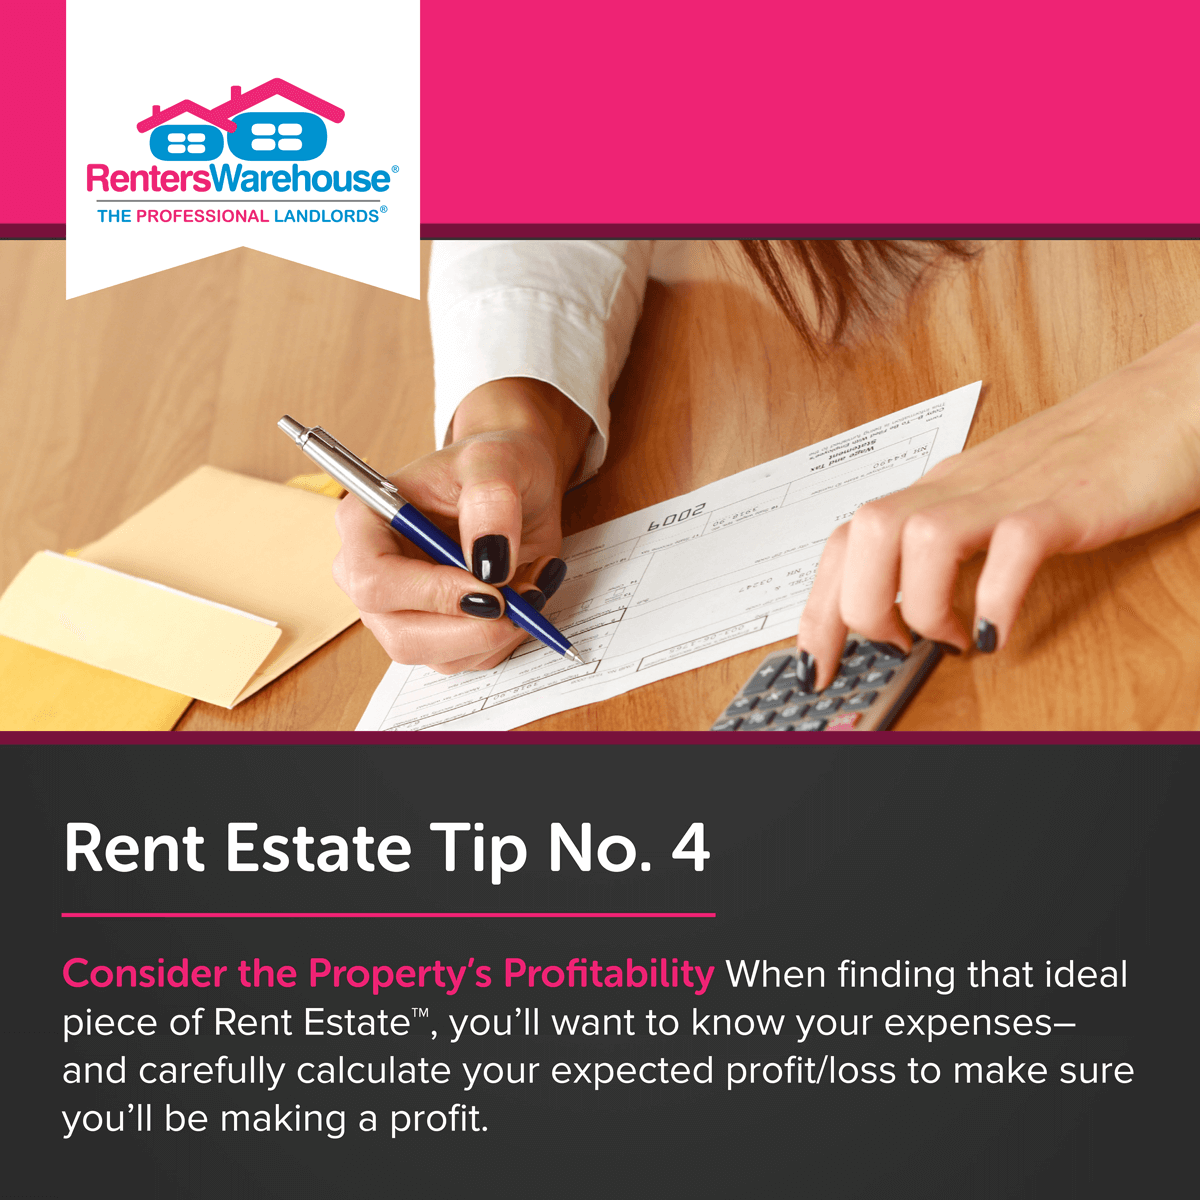 Image related to Rent Estate™ Tip No. 4 - Consider the Property's Profitability